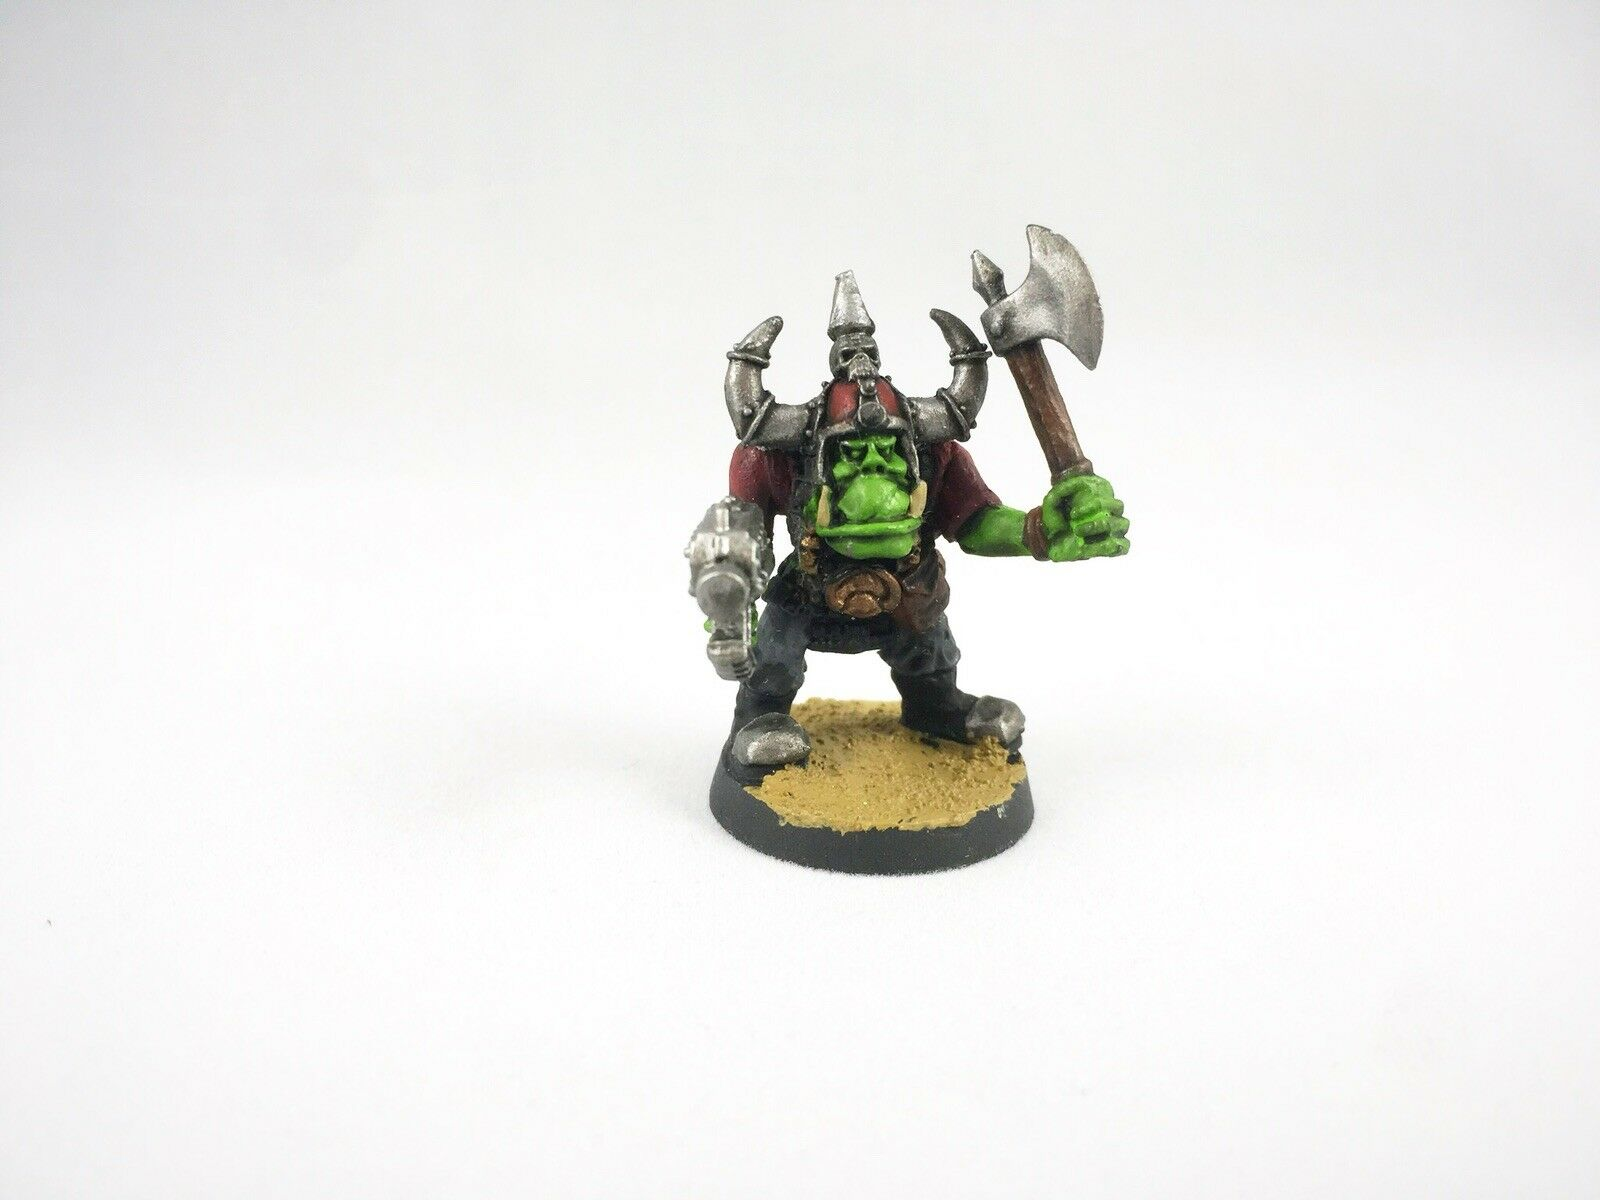 12x Warhammer 40k 2nd Edition Metal Ork Nobz Nicely Painted